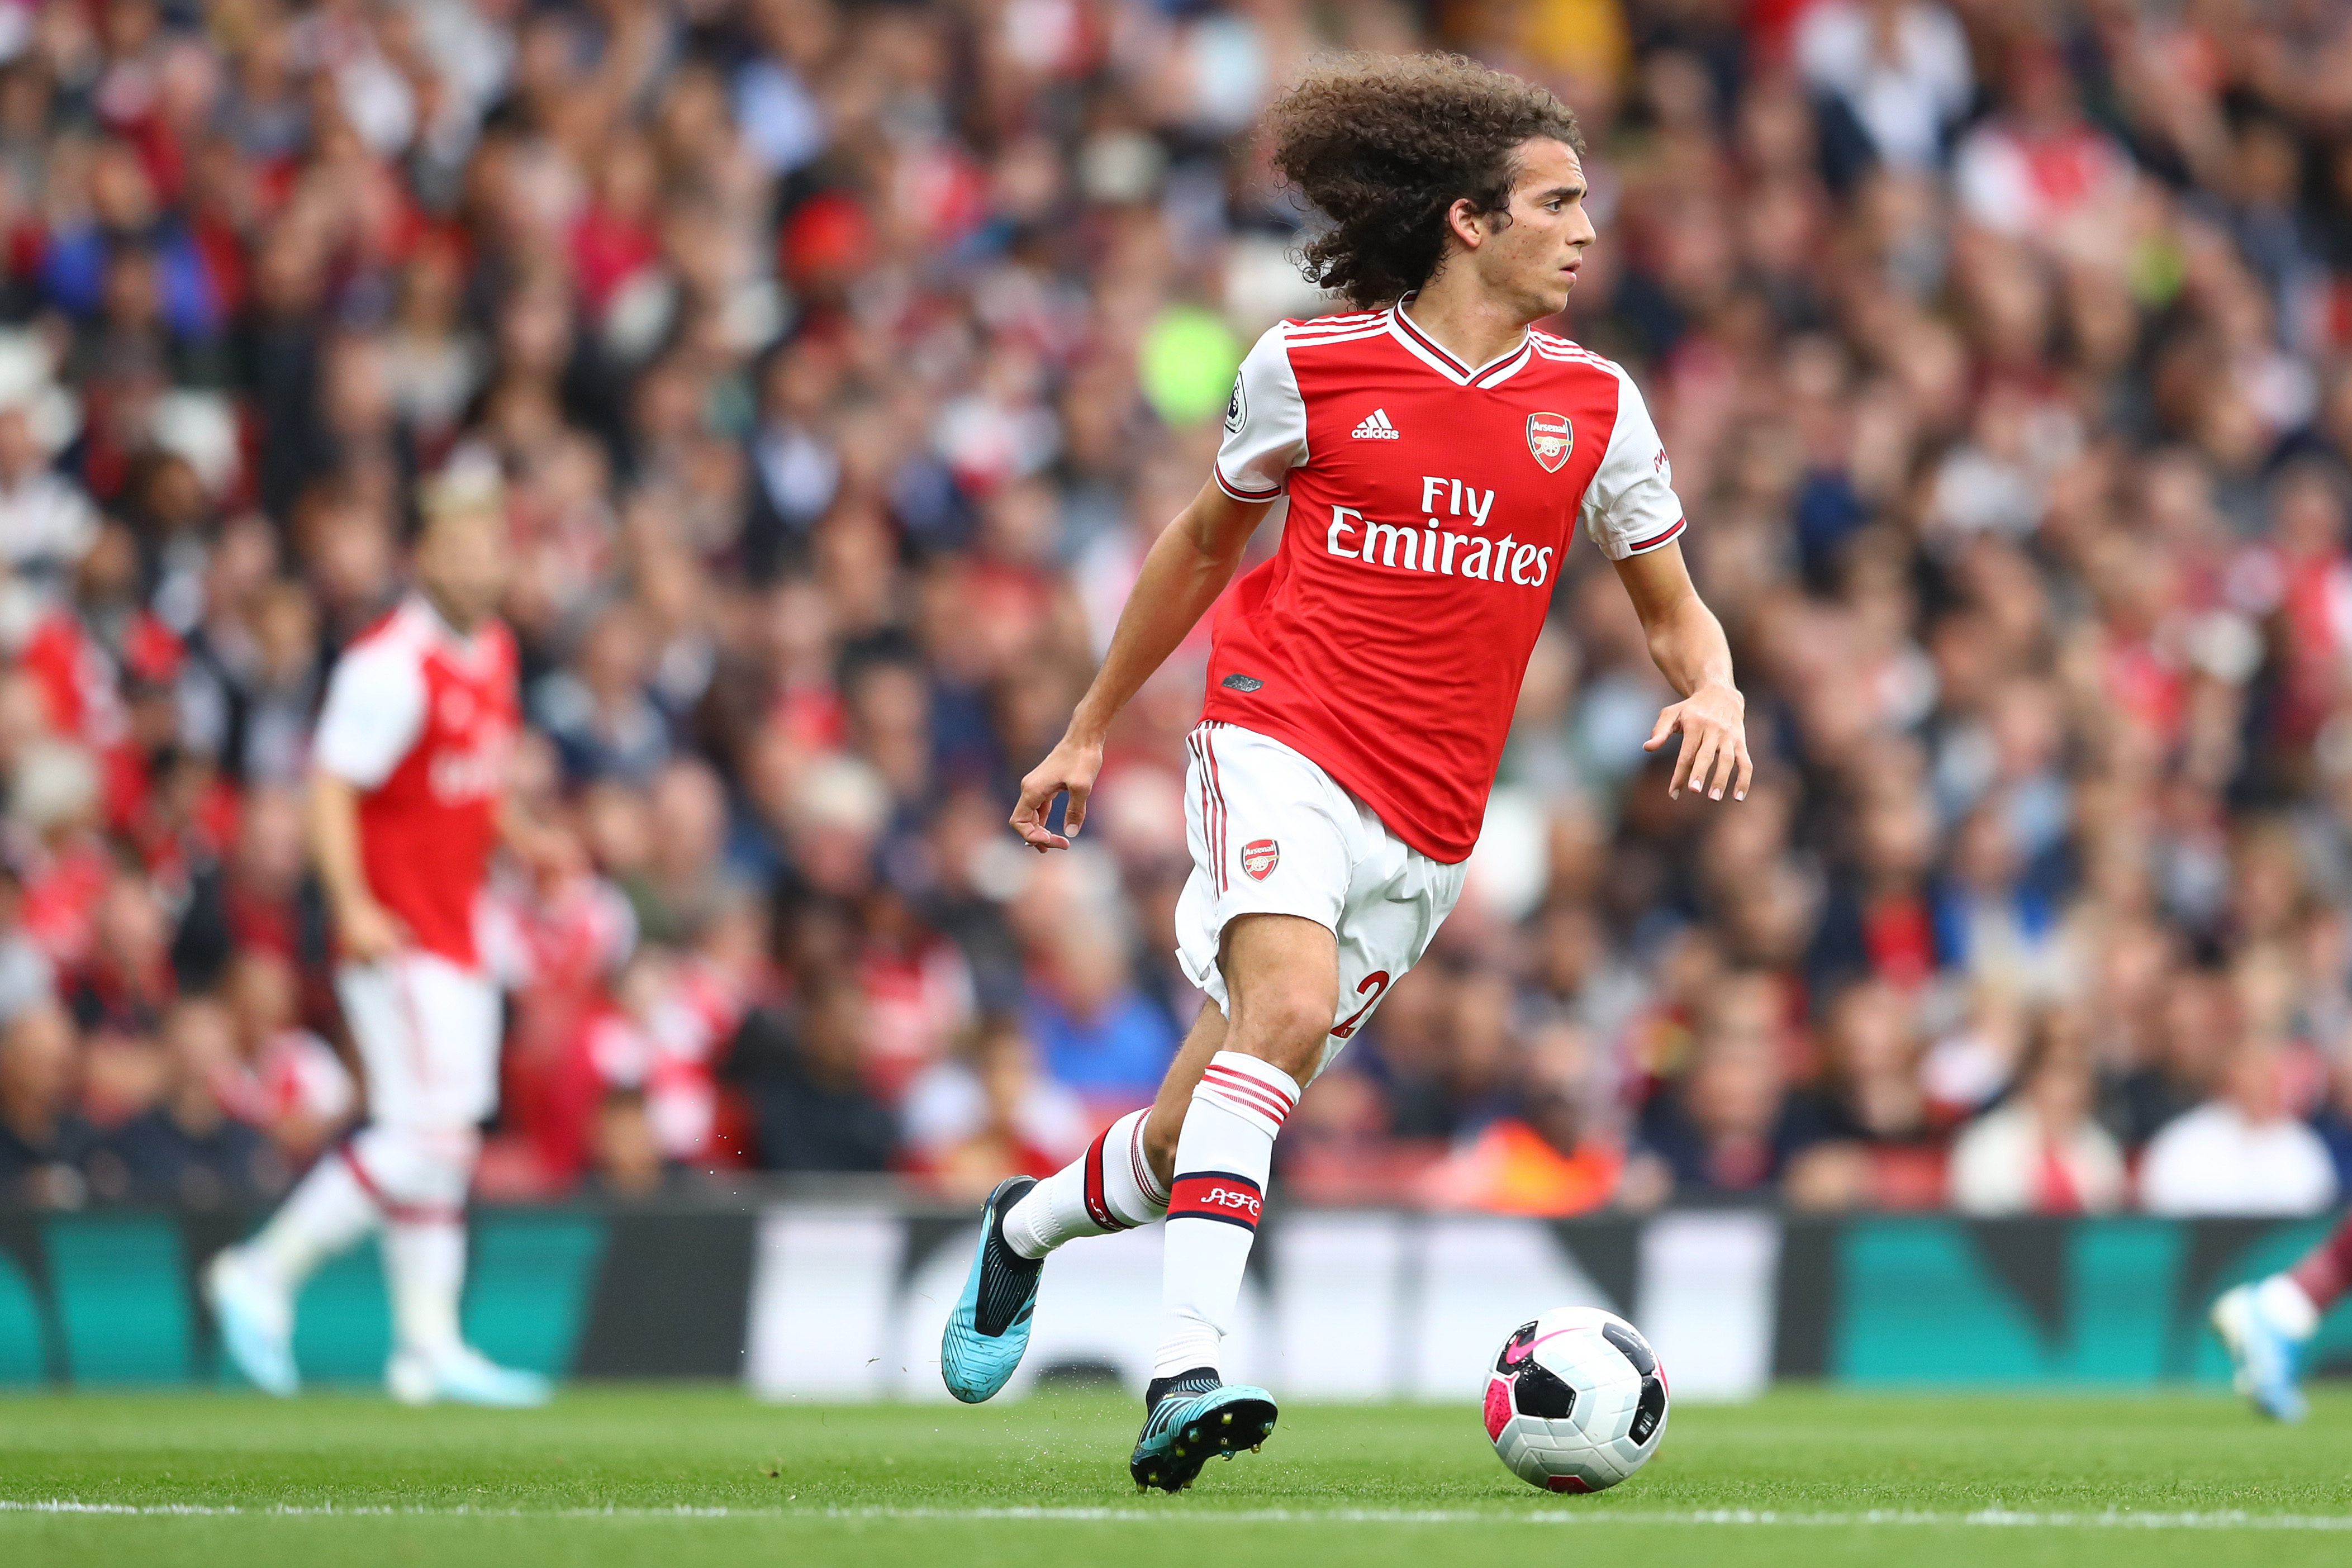 PSG are ready to rival Real Madrid in pursuit of Matteo Guendouzi - An ideal signing?